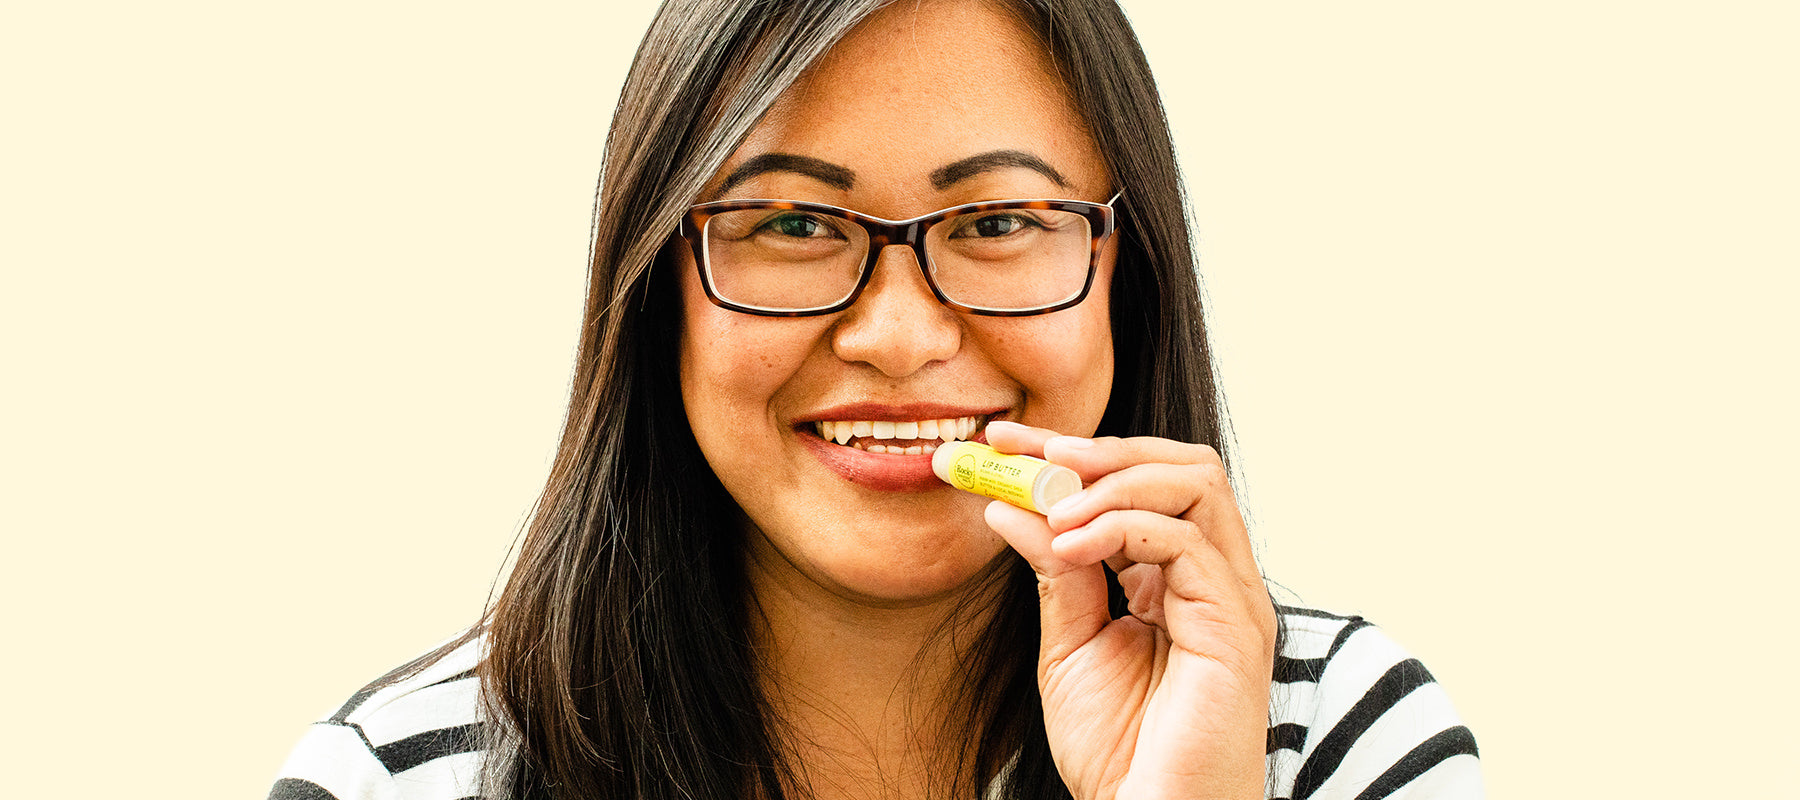 image of woman applying all natural rocky mountain soap company lip balm to her lips.